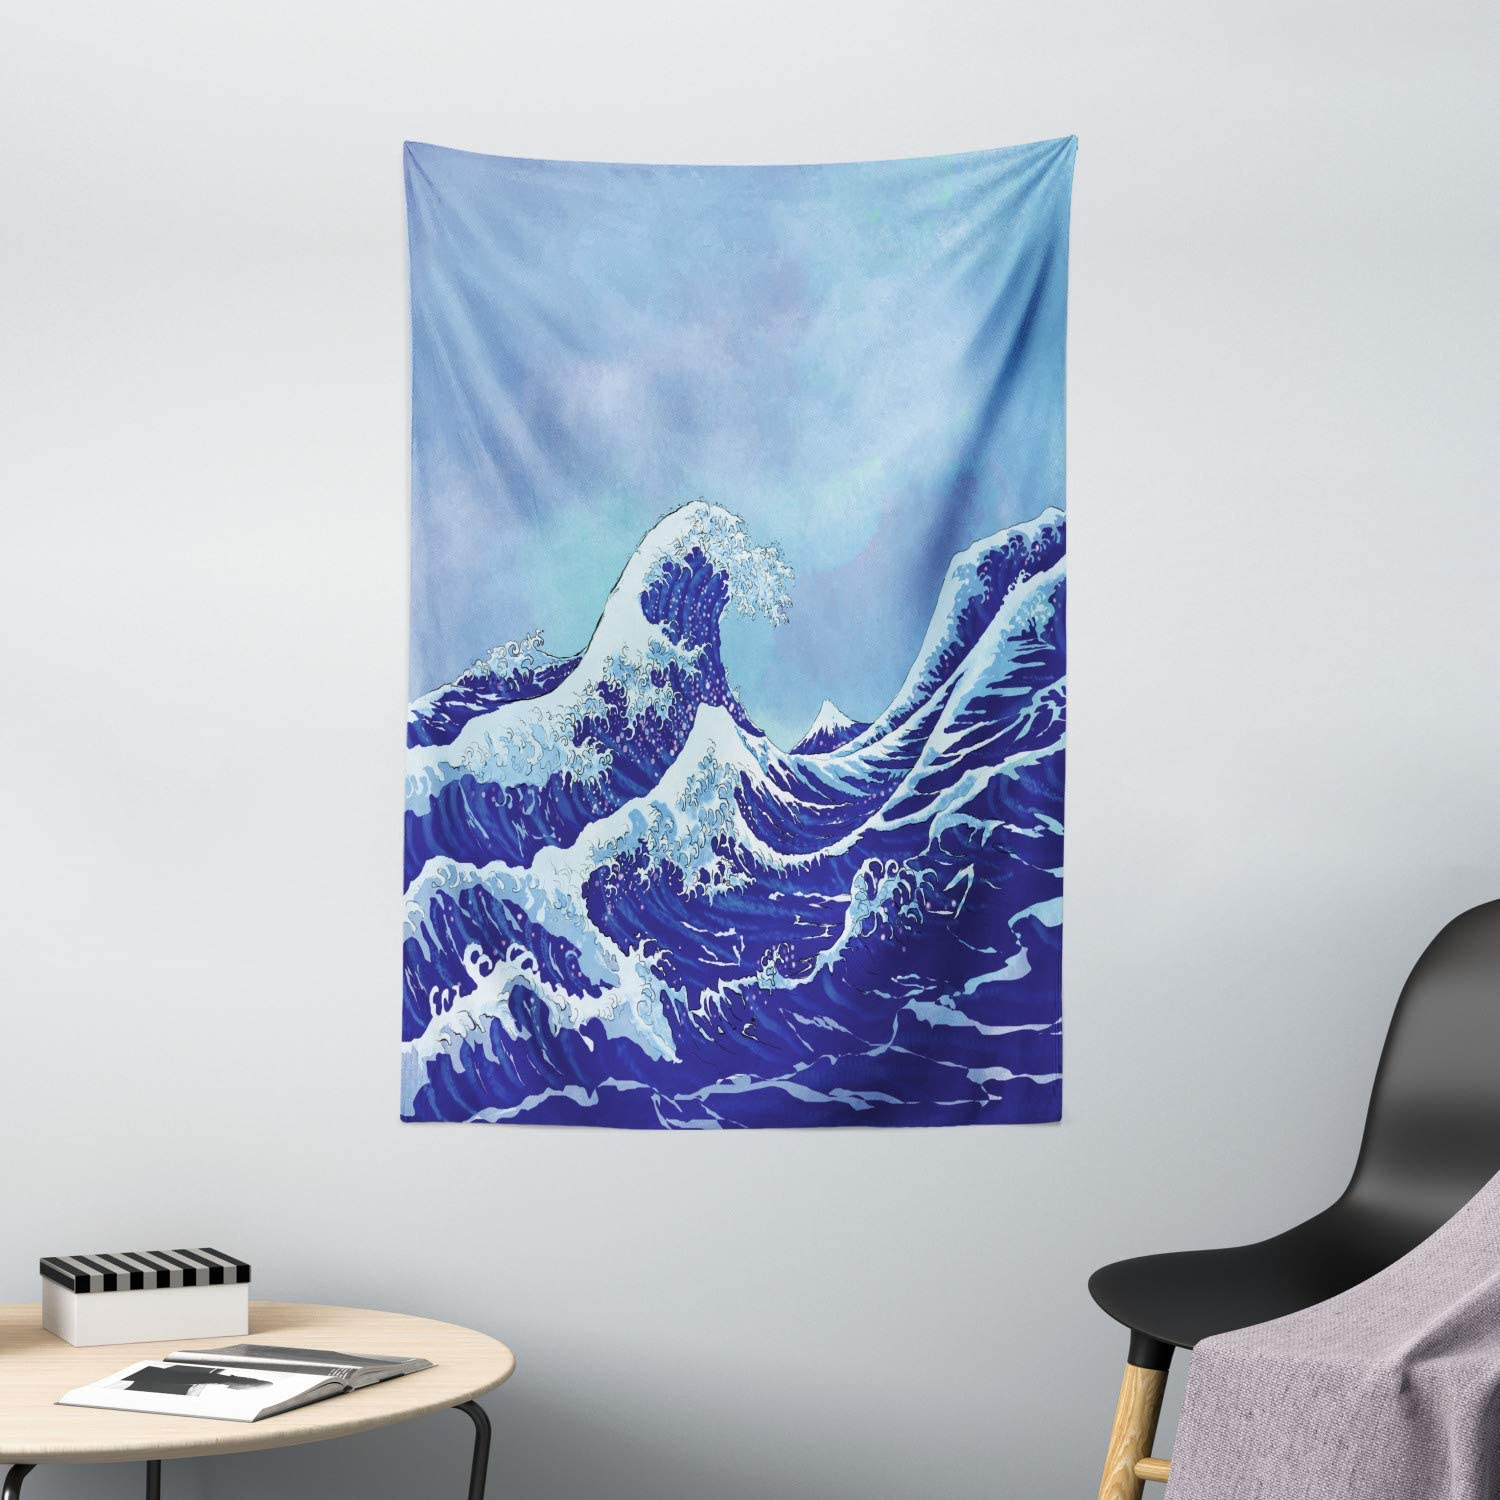 Ambesonne Kanagawa Tapestry, Big Tsunami in The Ocean Blue Sky Japanese Nature Sea Waves Art, Wall Hanging for Bedroom Living Room Dorm Decor, 40